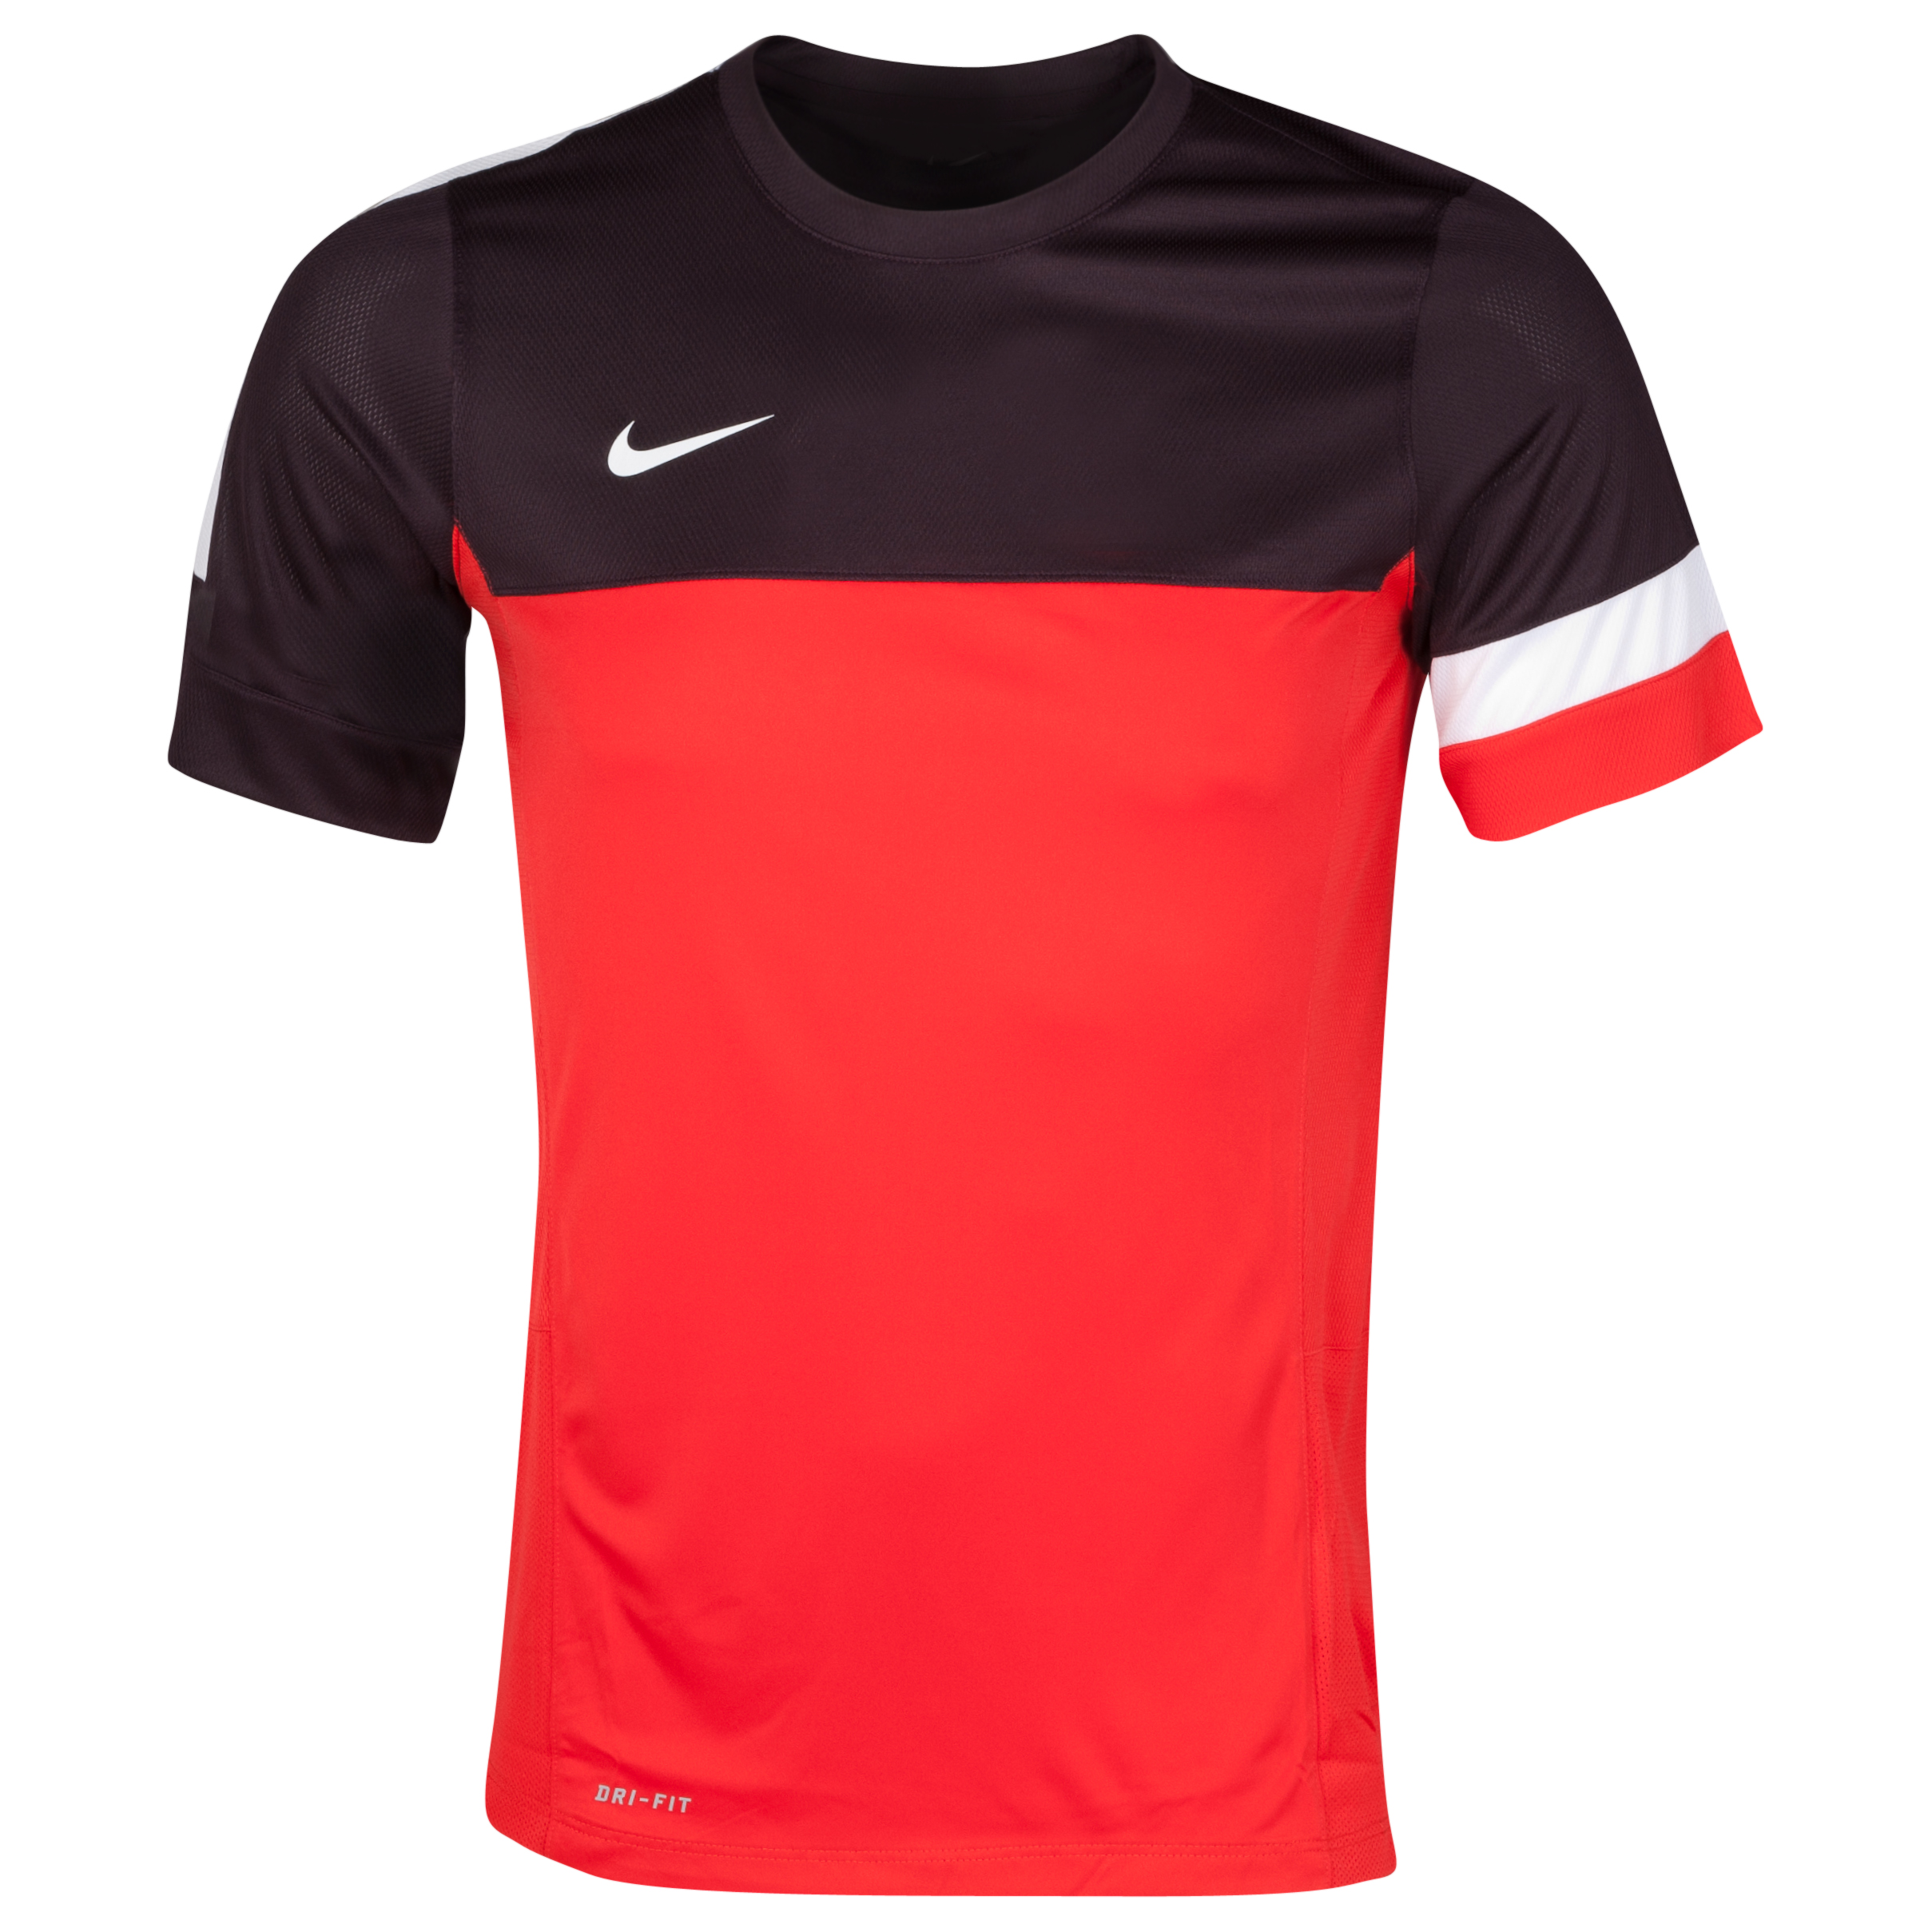 Nike Training Top - Challenge Red/White